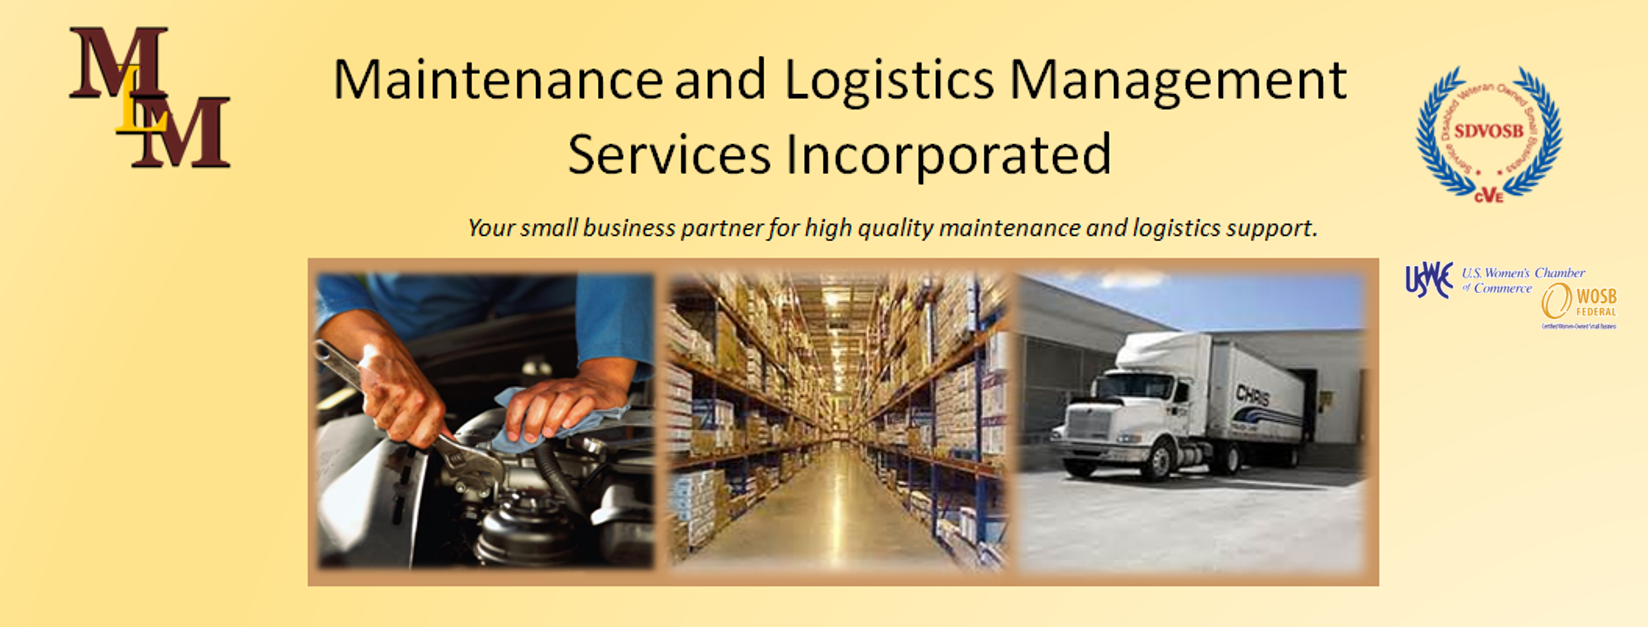 Maintenance and Logistics Management Services Incorporated